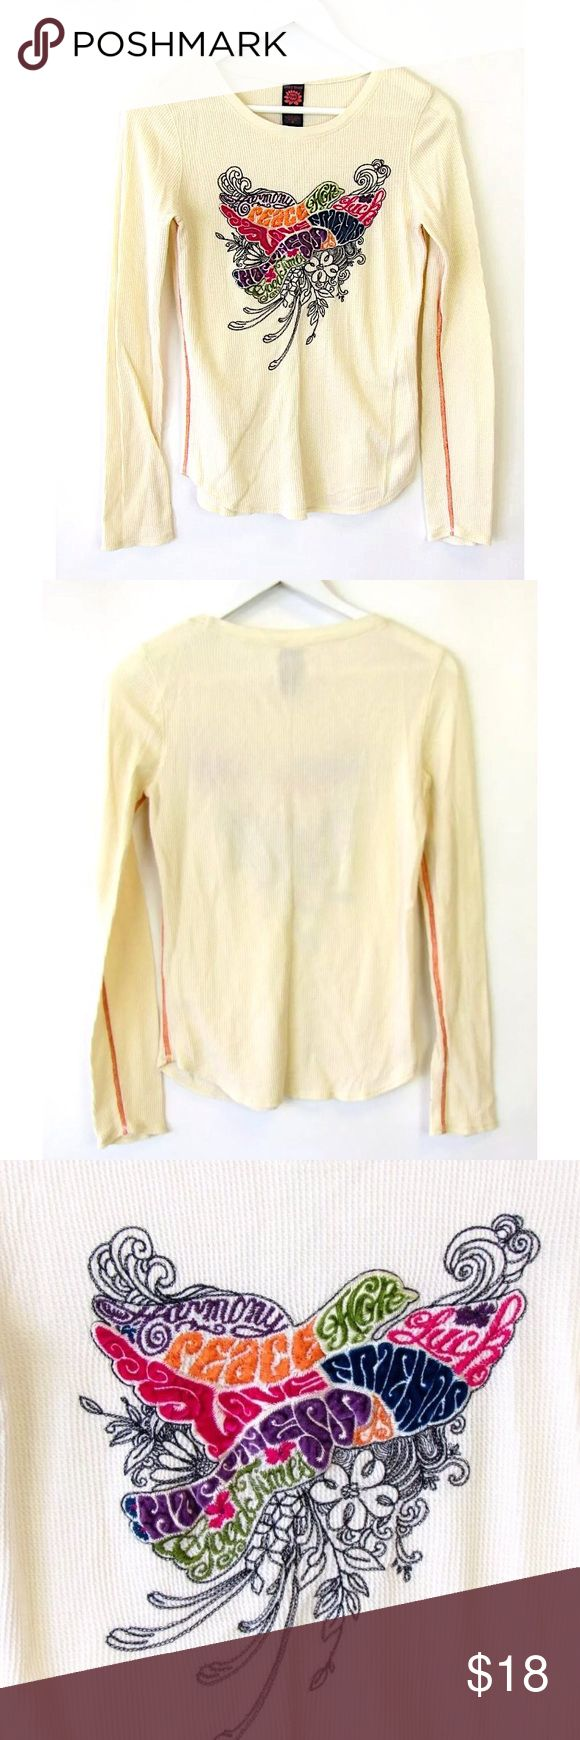 """Lucky Brand Thermal Waffle Embroidered Top Sz M Brand: Lucky Brand Style: Long Sleeve Waffle/Thermal Shirt with Emroidered Dove/Words """"Happiness, Harmony, Peace, Good Times, Friends, Luck, Hope"""" Size: Medium  Color: Cream/White Material: 100% Cotton Measurements taken flat: -Across under arm: 17"""" -Shoulder to hem: 25"""" Garment Care: Machine wash, tumble dry  Condition: No flaws. See pictures for details. Lucky Brand Tops Tees - Long Sleeve"""